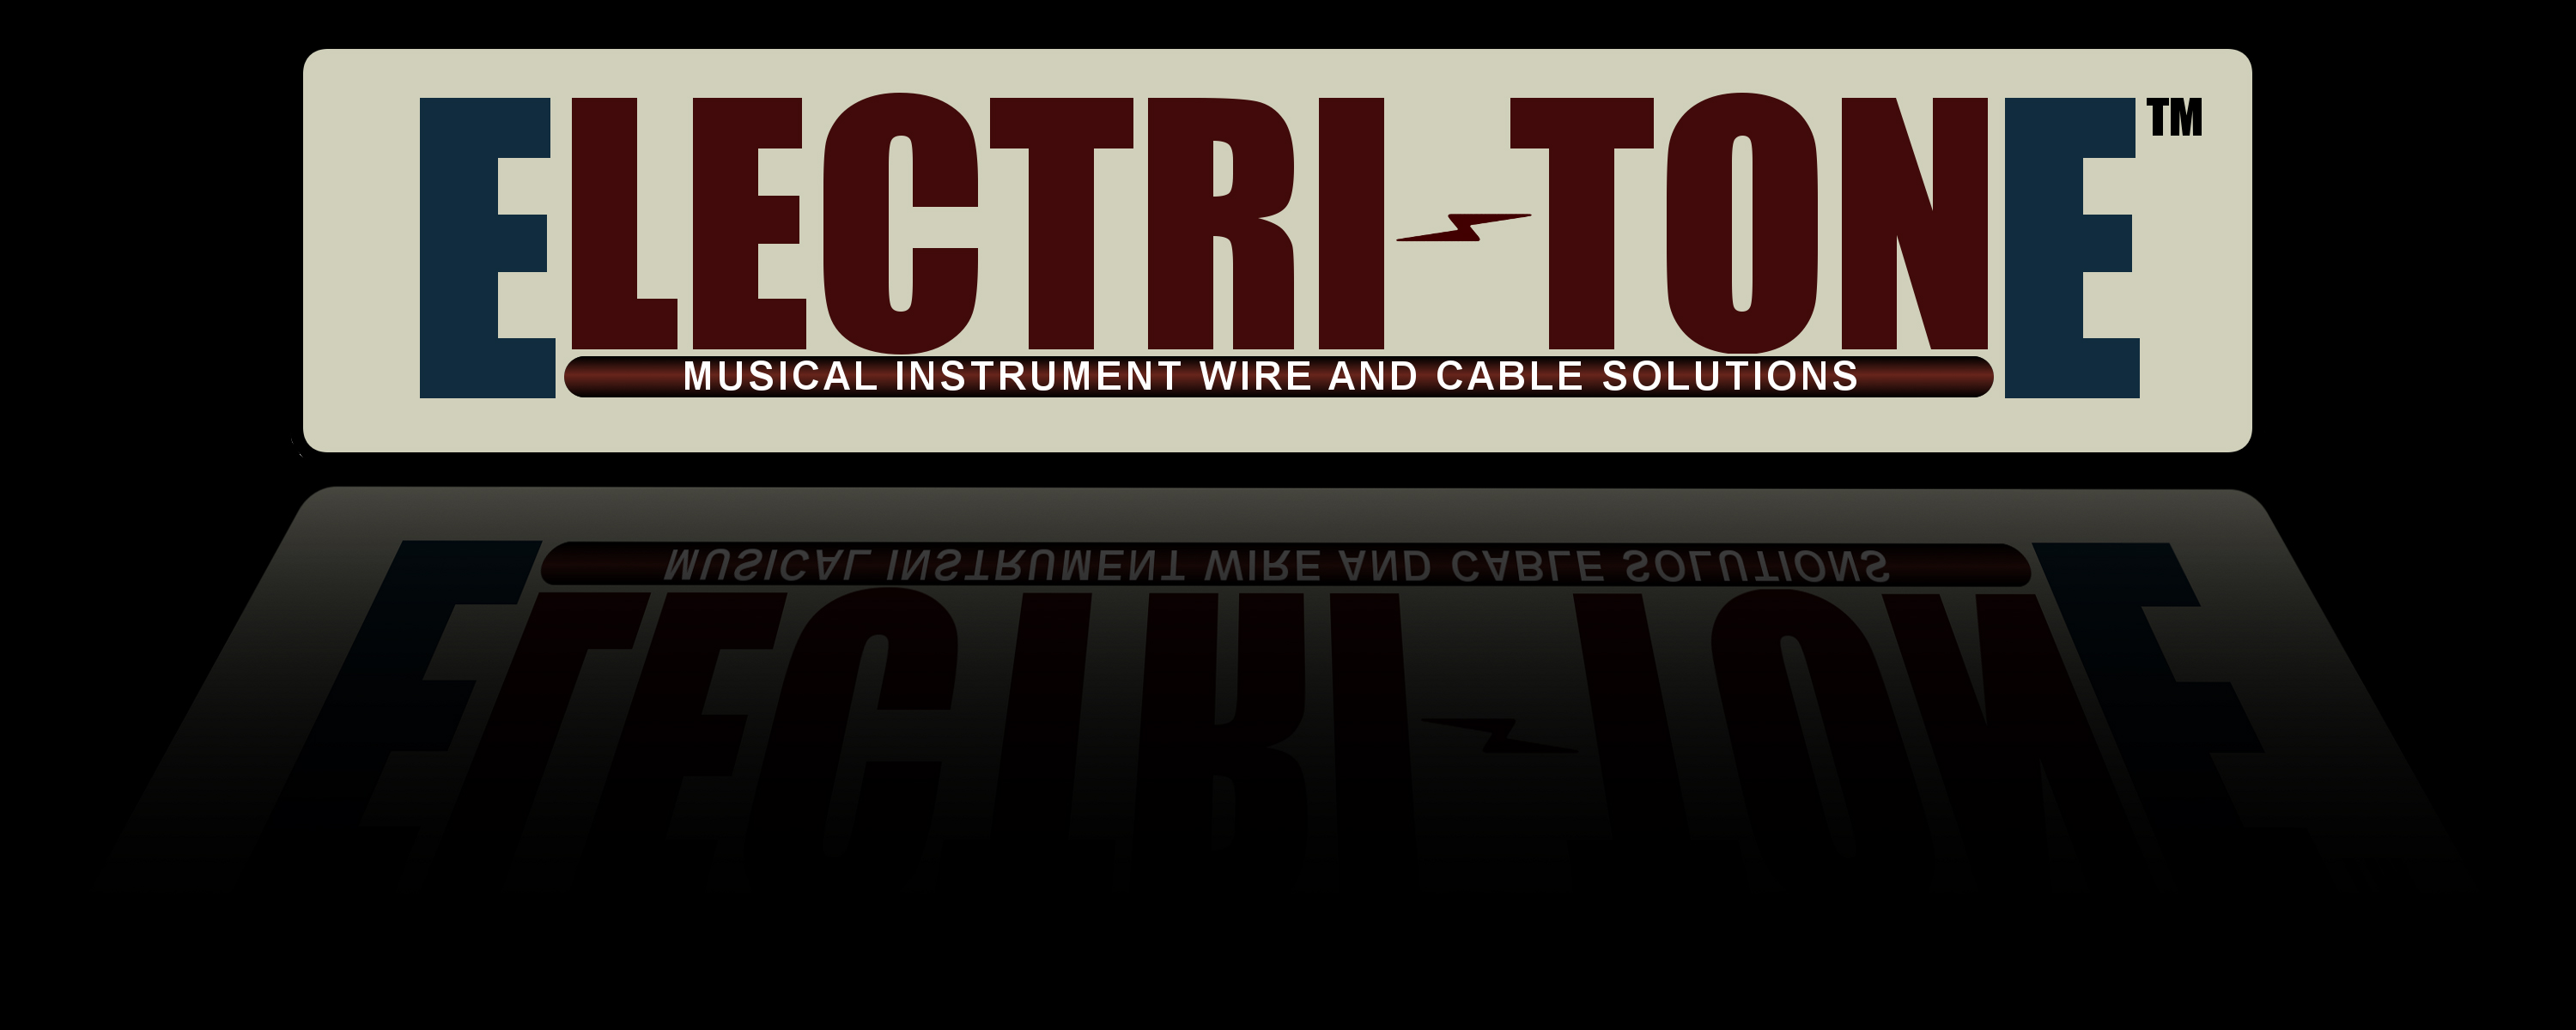 ELECTRI-TONE™ Musical Instrument Wire, Cable and Accessories